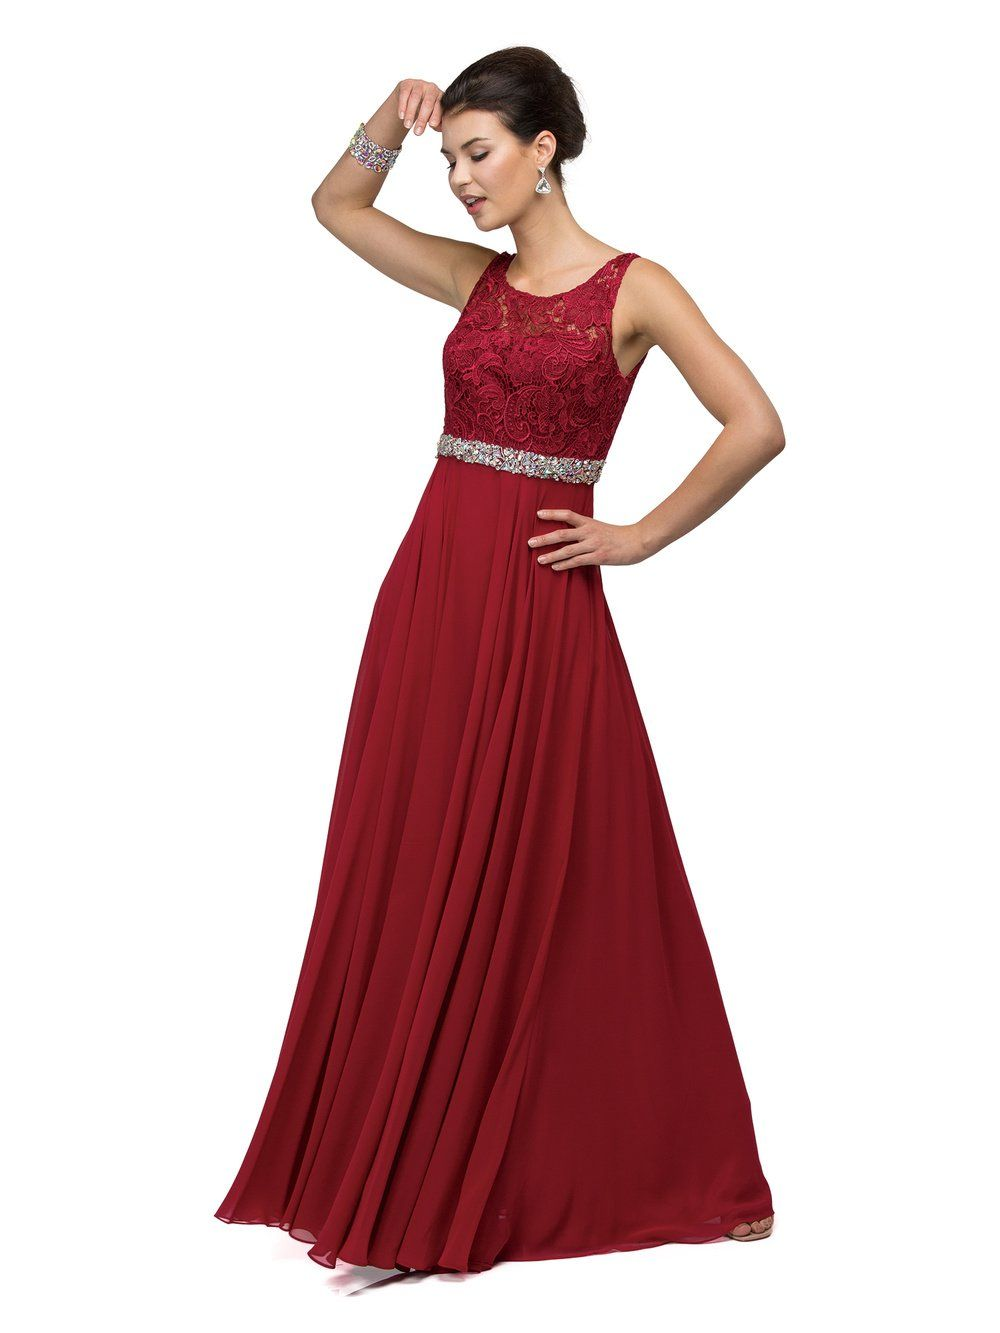 cb2aa4f277 DQ 9325 - Lace Applique A-Line with Attached Beaded Belt and Chiffon ...